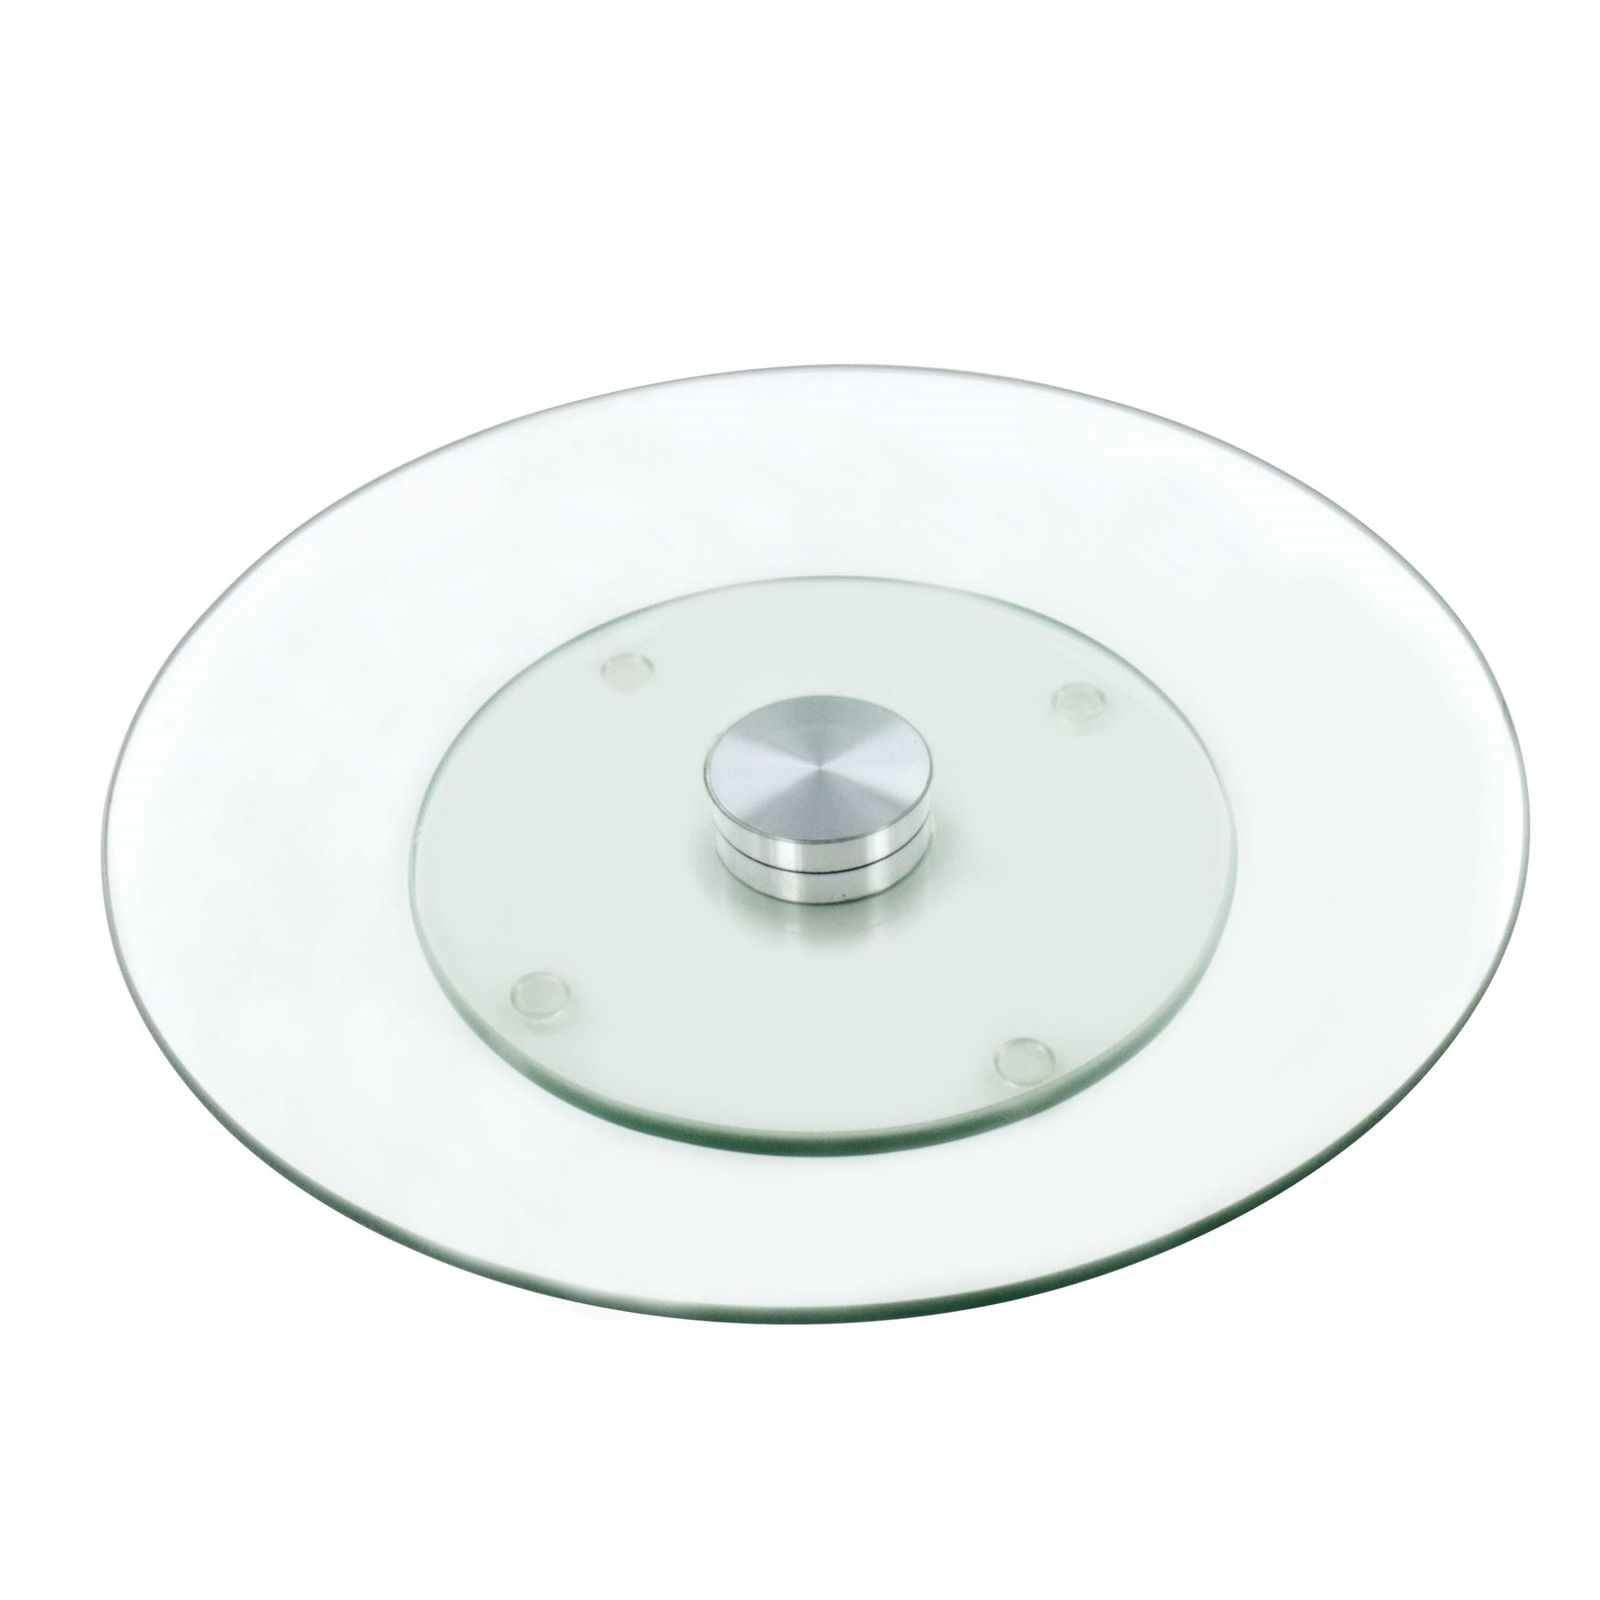 Lazy Susan Turntable For Cake Decorating : Tempered Glass Lazy Susan Rotating Turntable Serving Tray Cake Decorating Plate